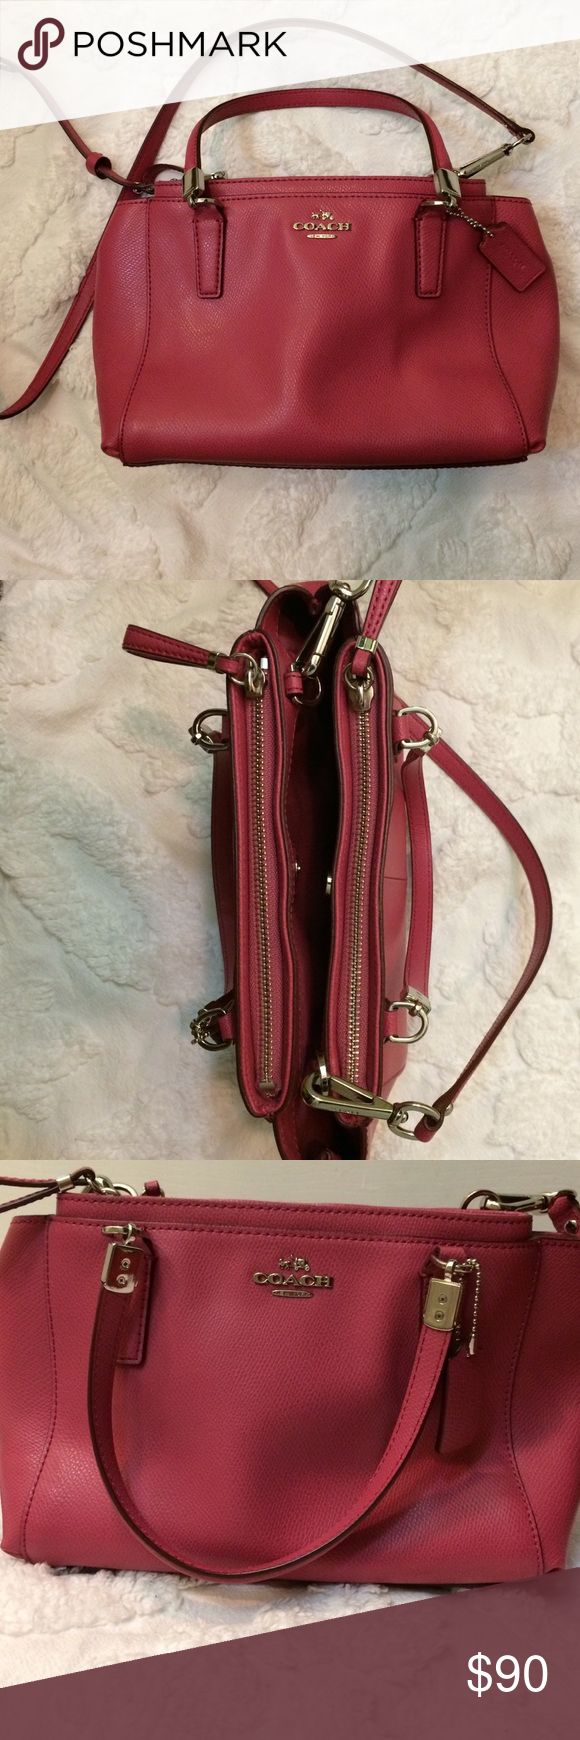 Gorgeous Coach handbag This like new handbag features two zipper compartments and a center compartment with magnetic closure. It is a pink color with two handles and longer strap for versatility. EUC this bag holds a lot! Coach Bags